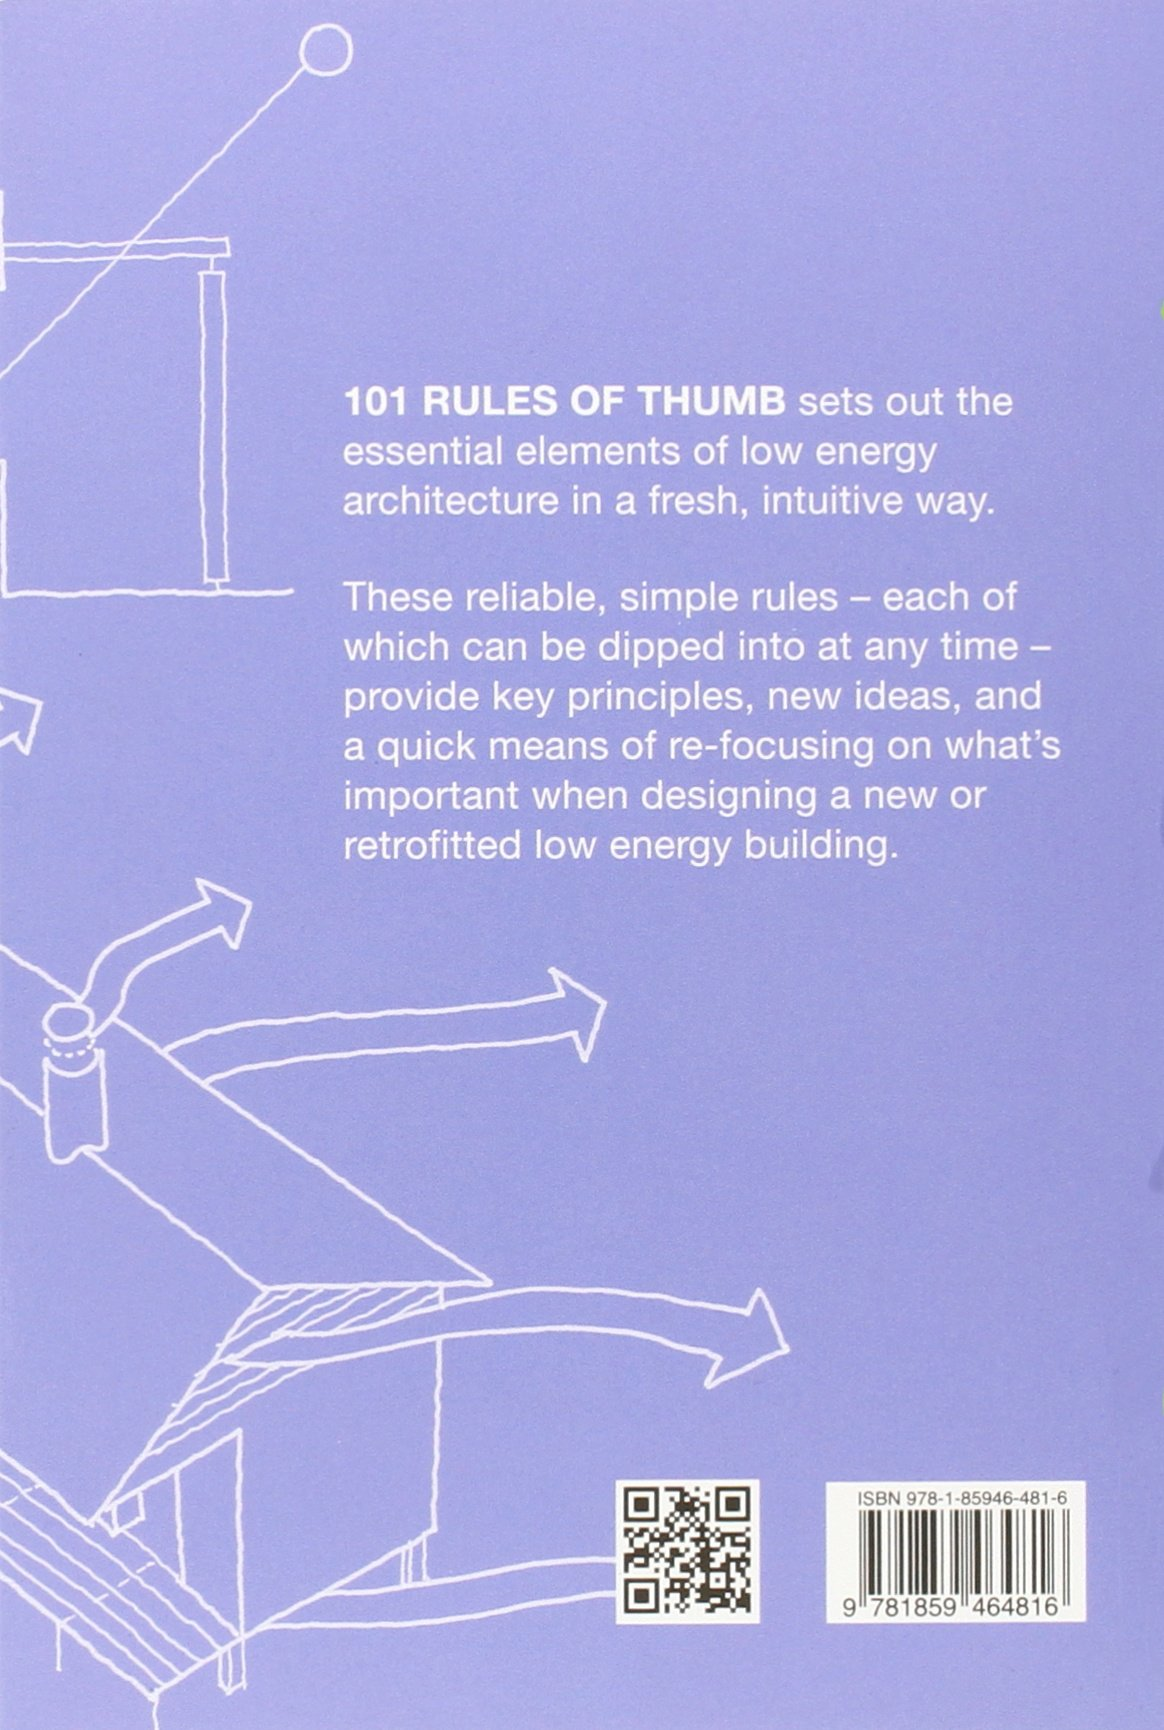 101 Rules of Thumb for Low Energy Architecture by imusti (Image #1)